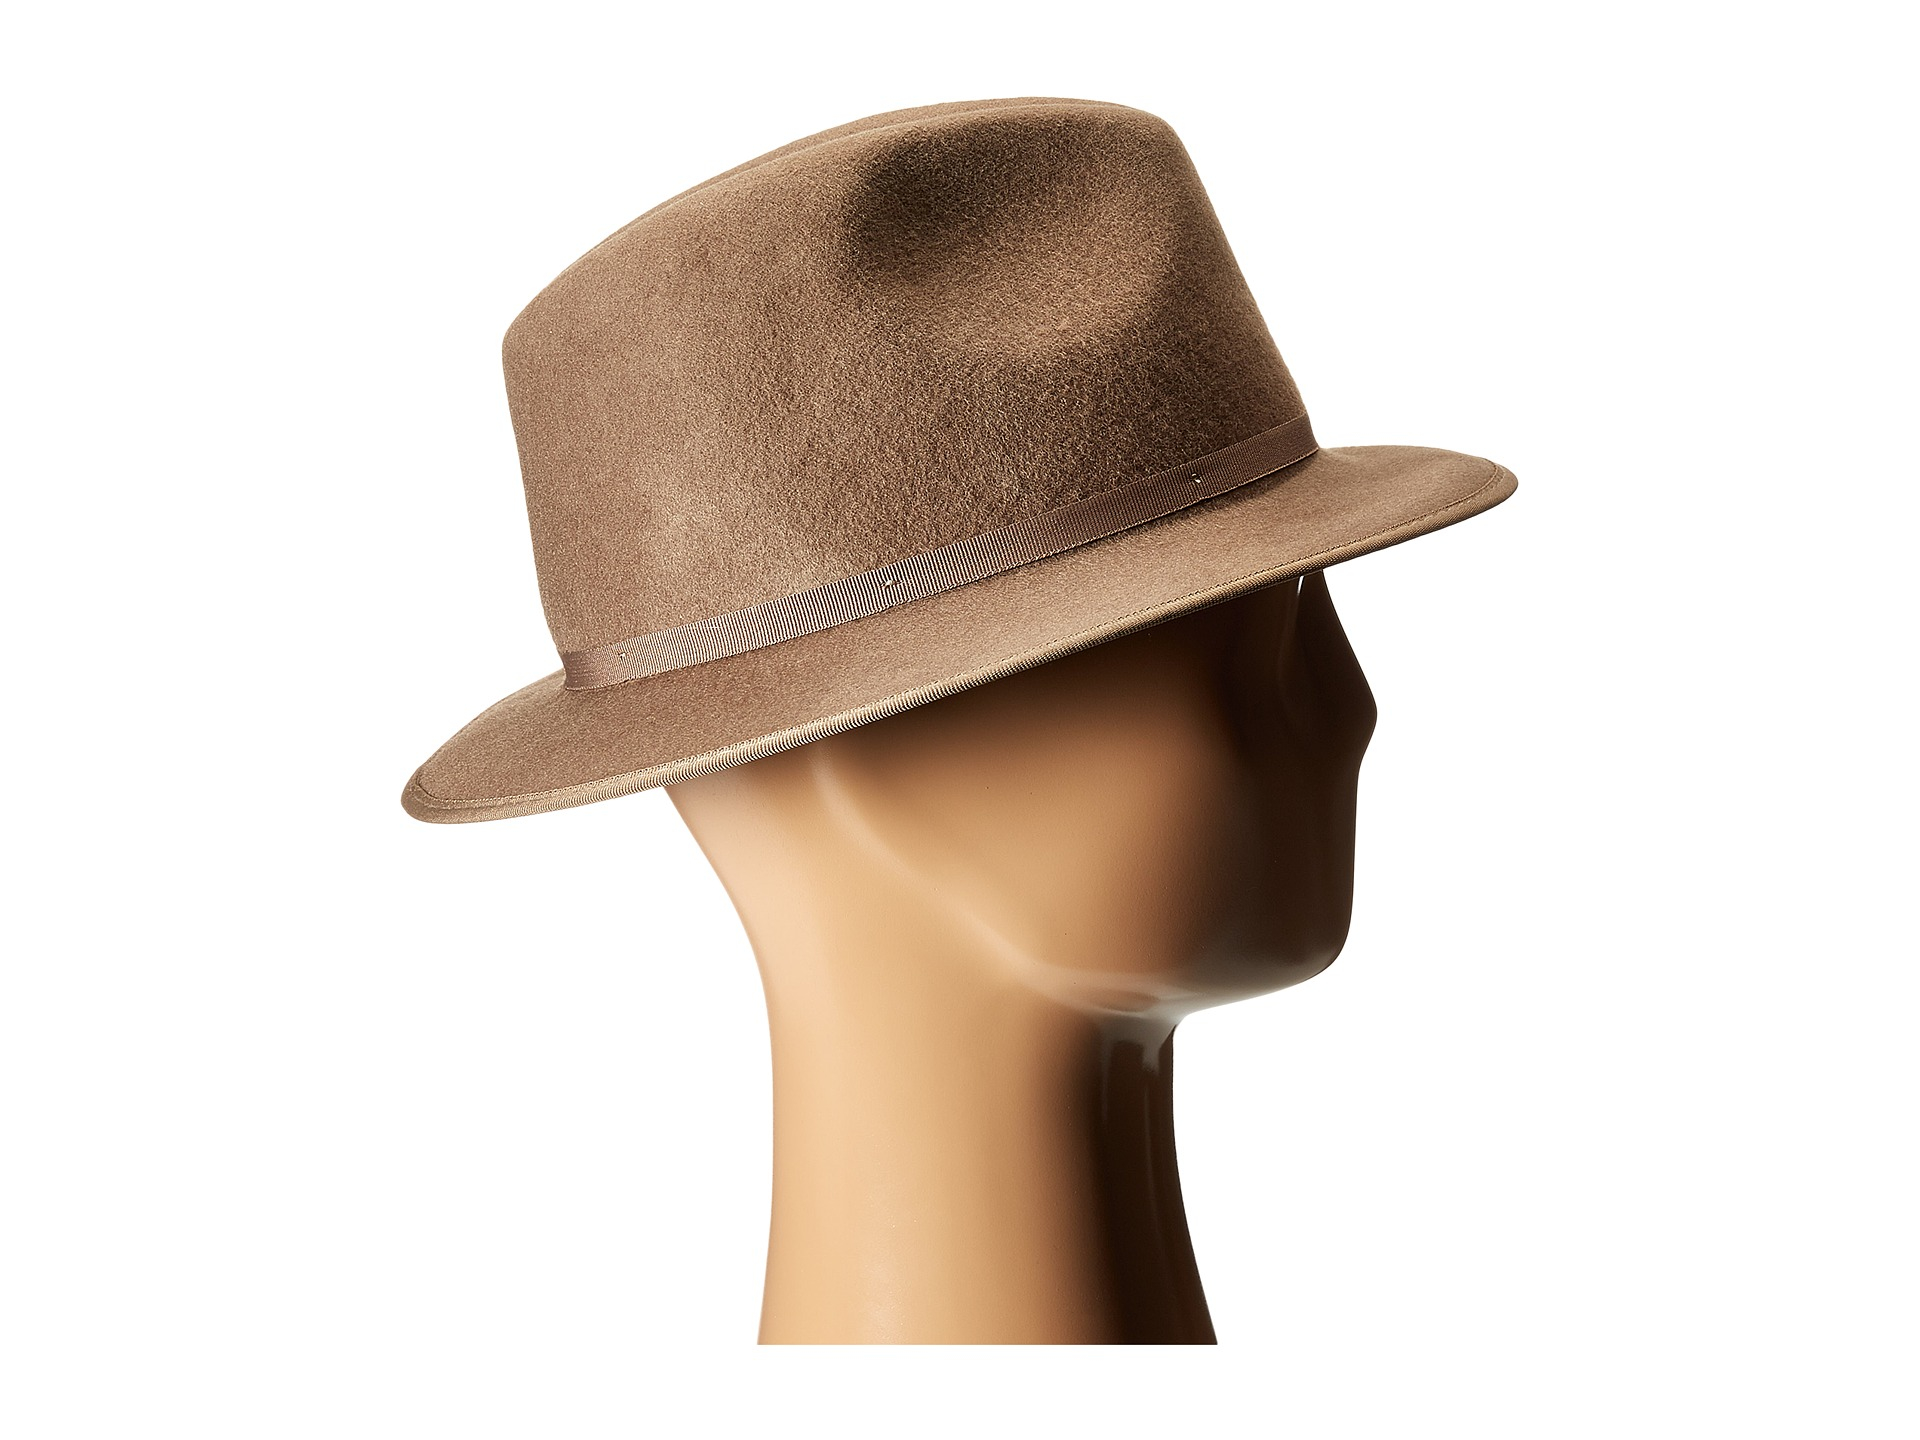 171324bed5c24 Oil Cloth Safari Hat. woolrich wool outback hat